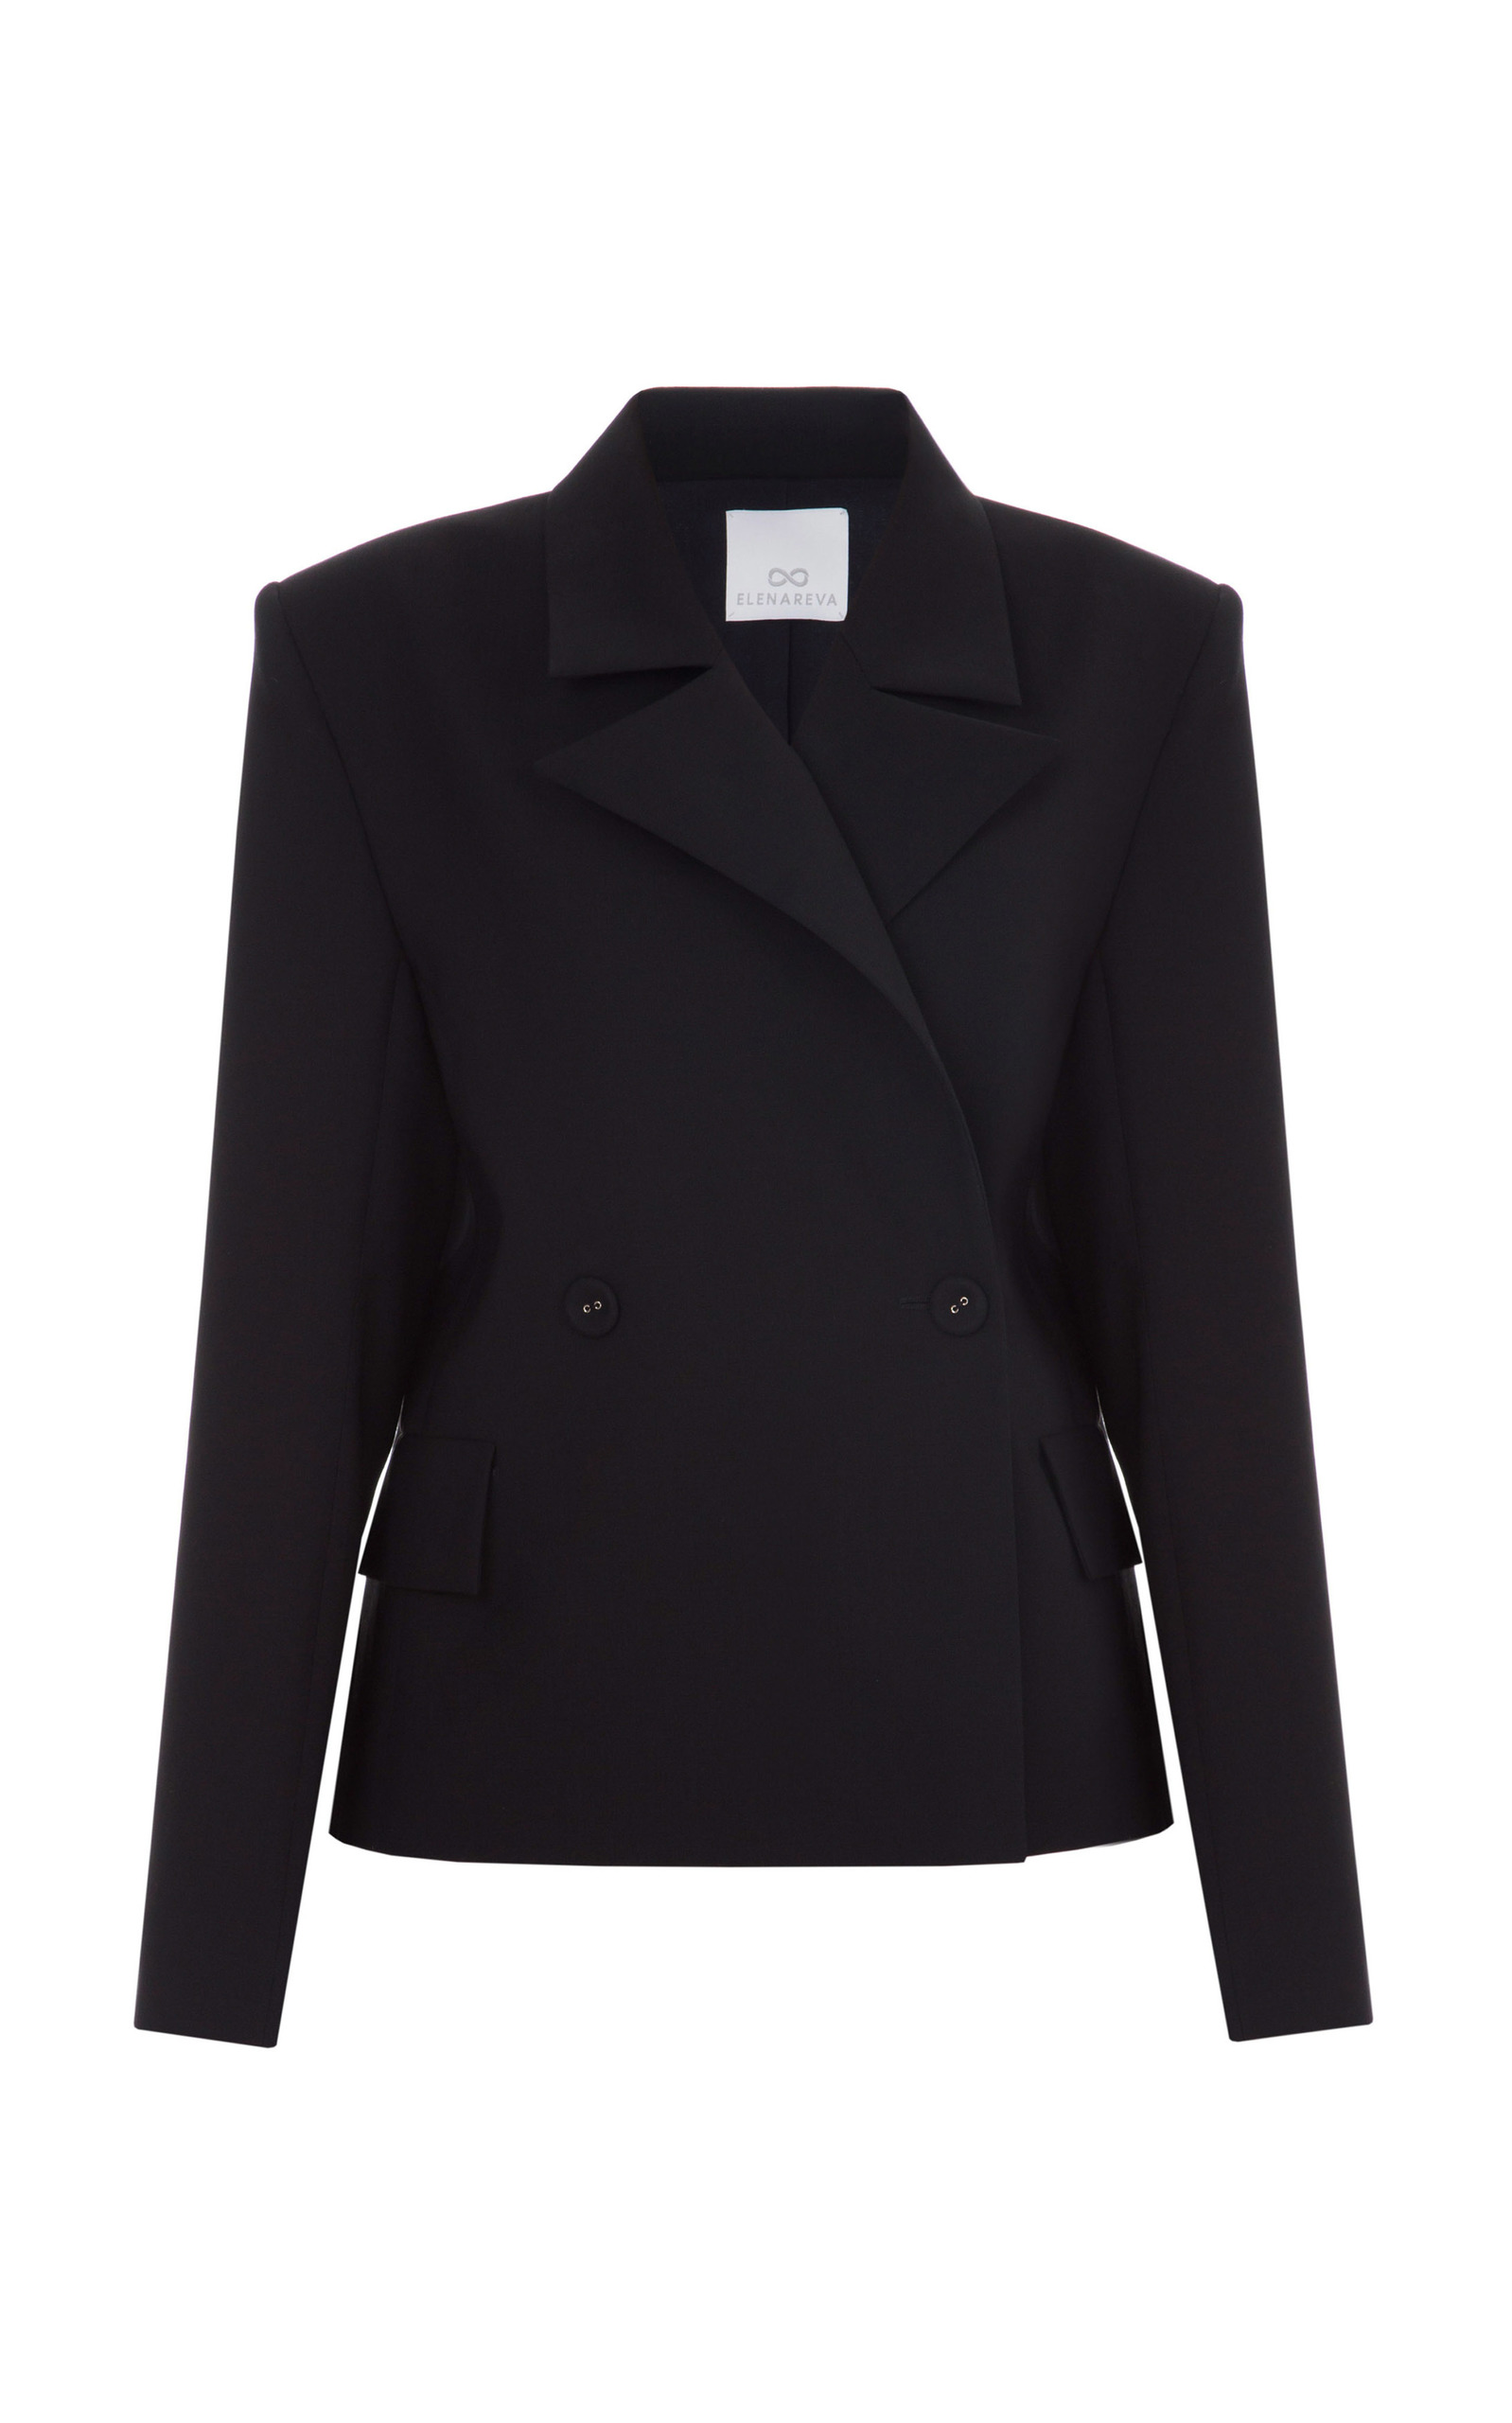 Short Tailored Jacket by ELENAREVA | Moda Operandi